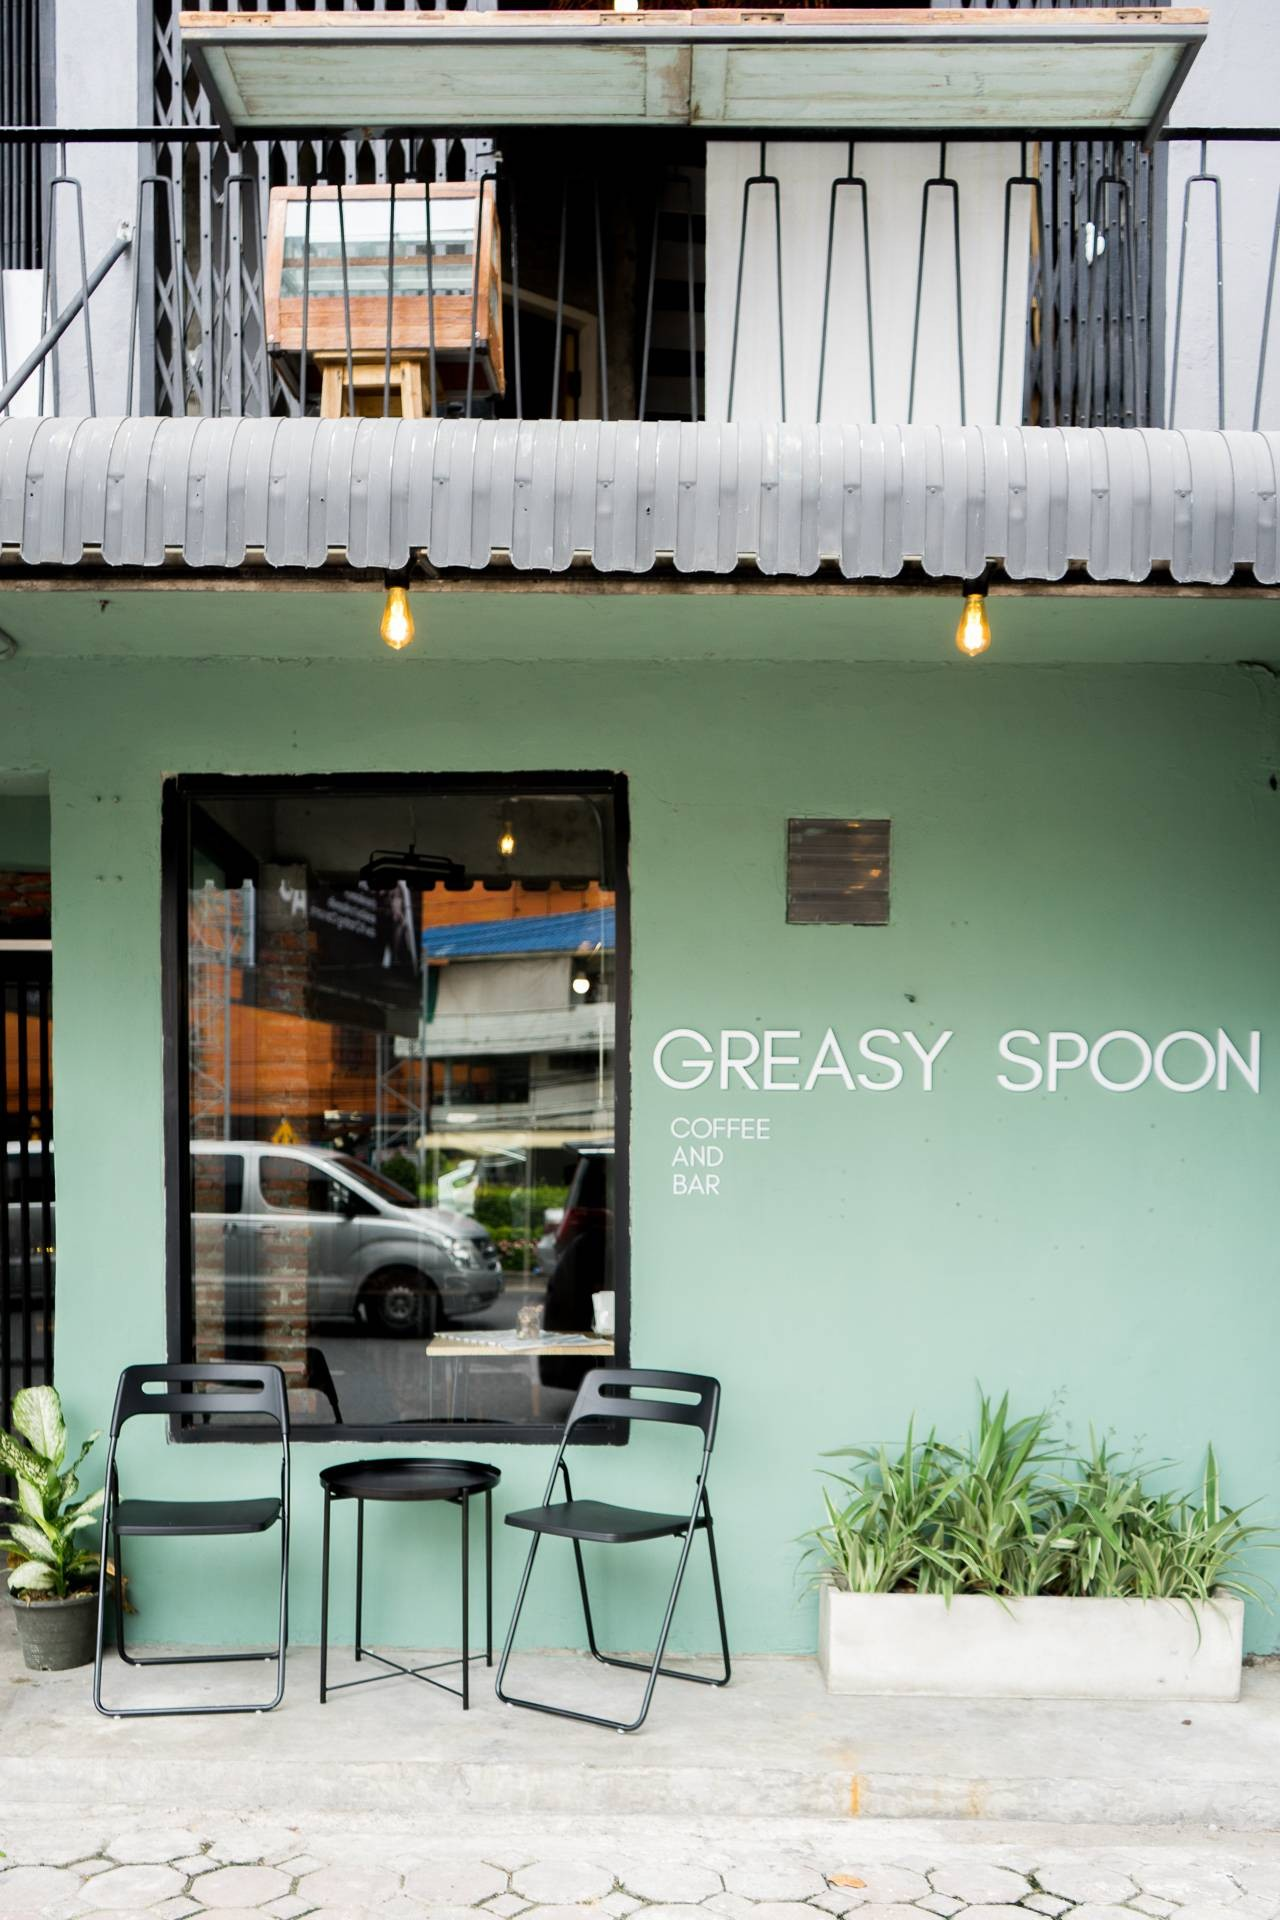 Greasy Spoon Coffee And Bar